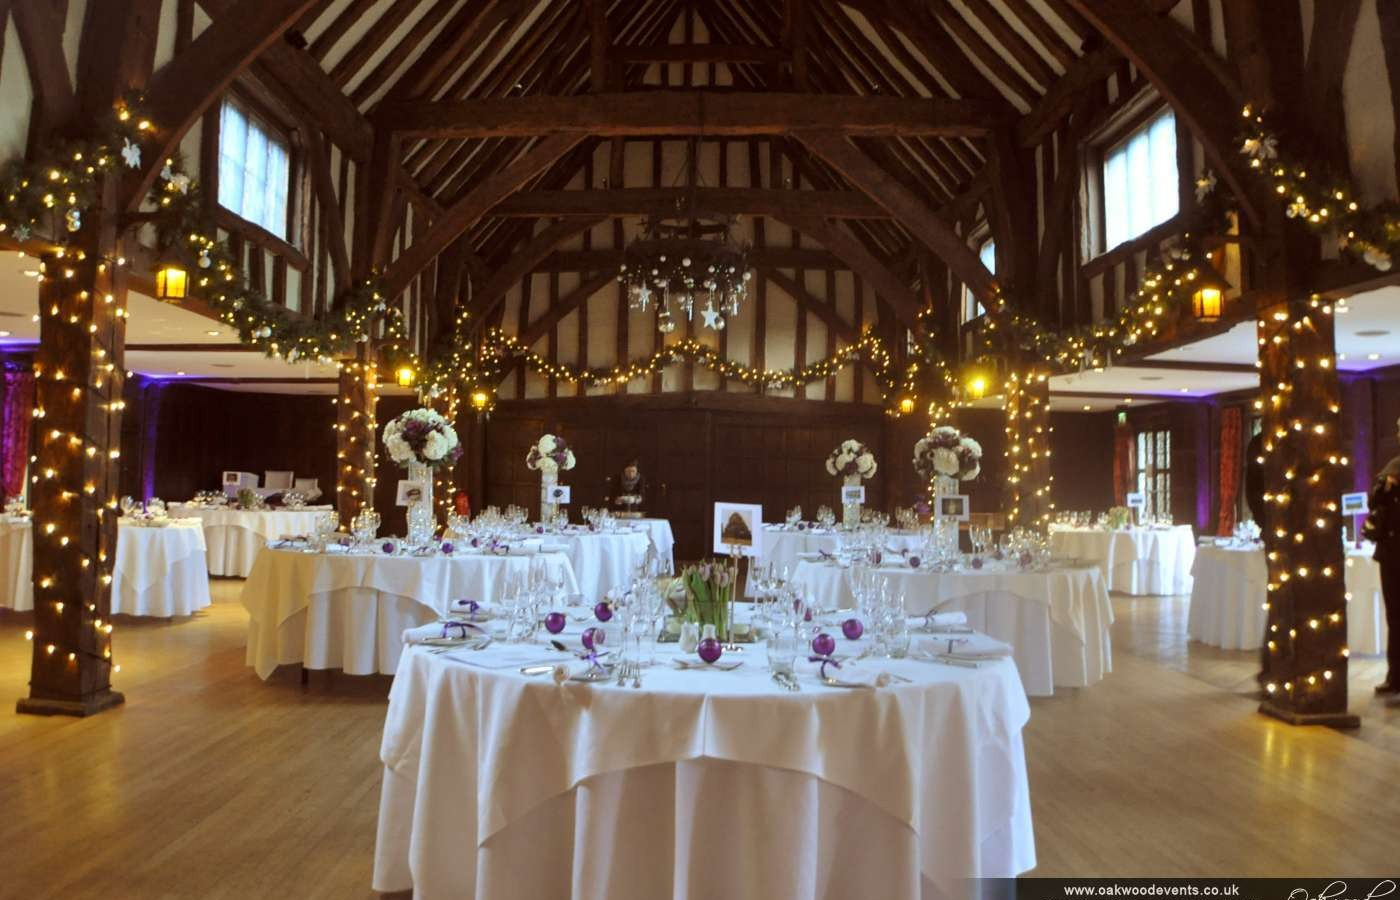 Blog | Latest news from Oakwood Events